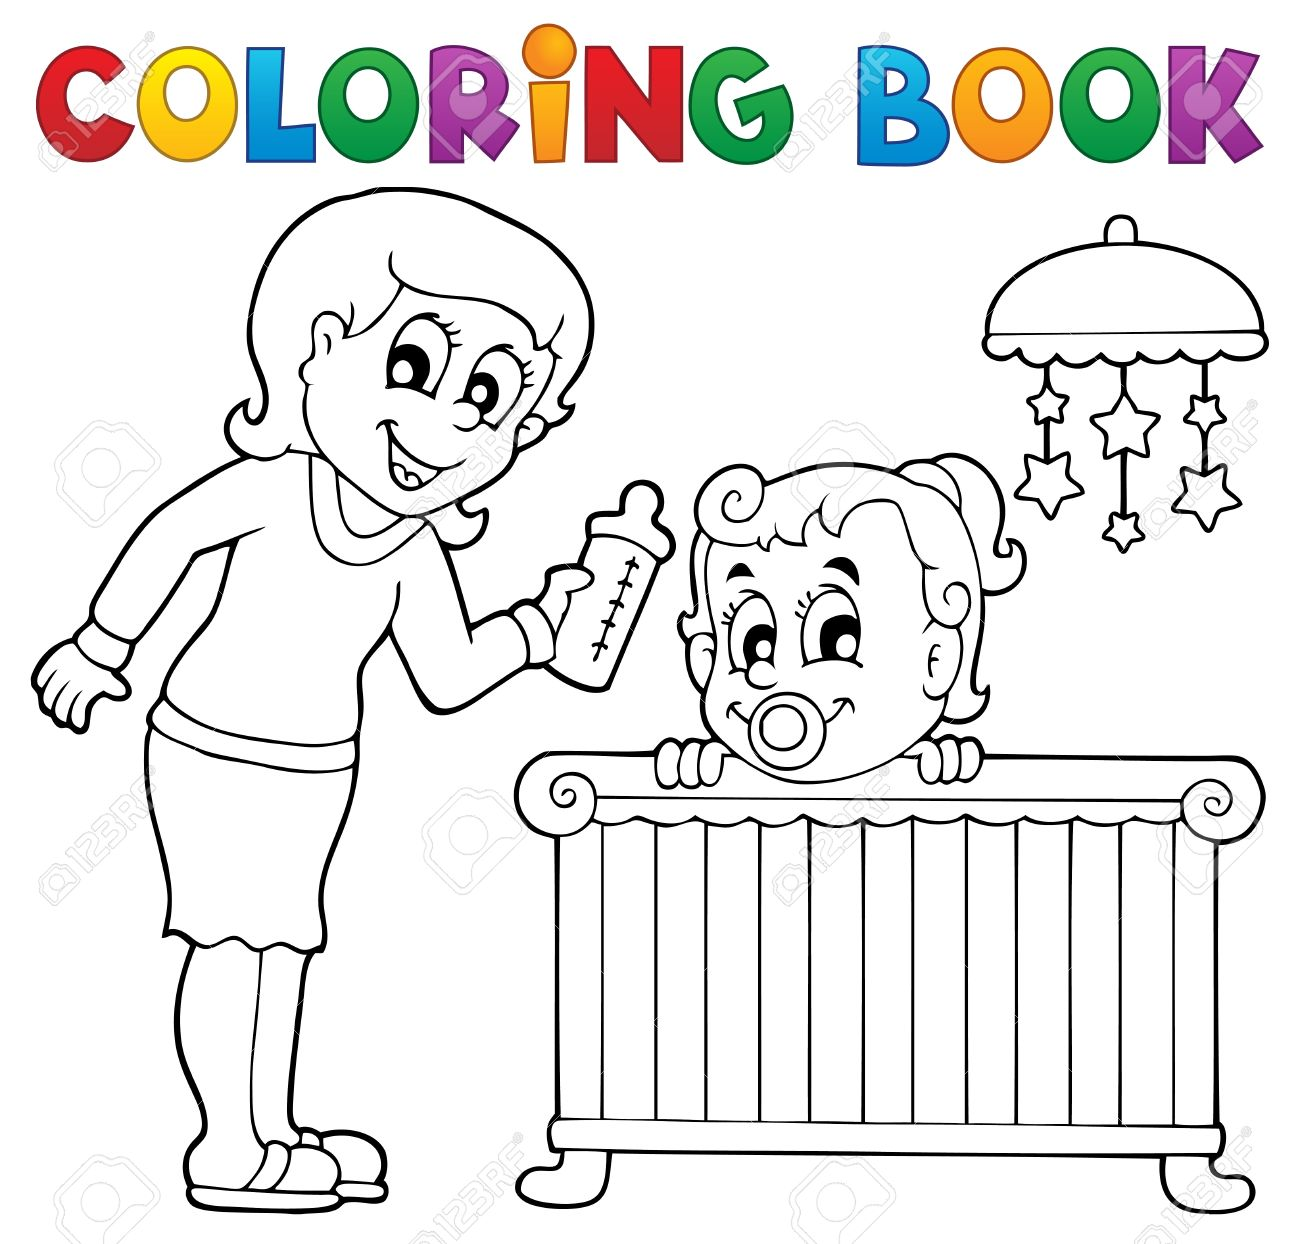 Coloring Book Baby Theme Image 1 Stock Vector